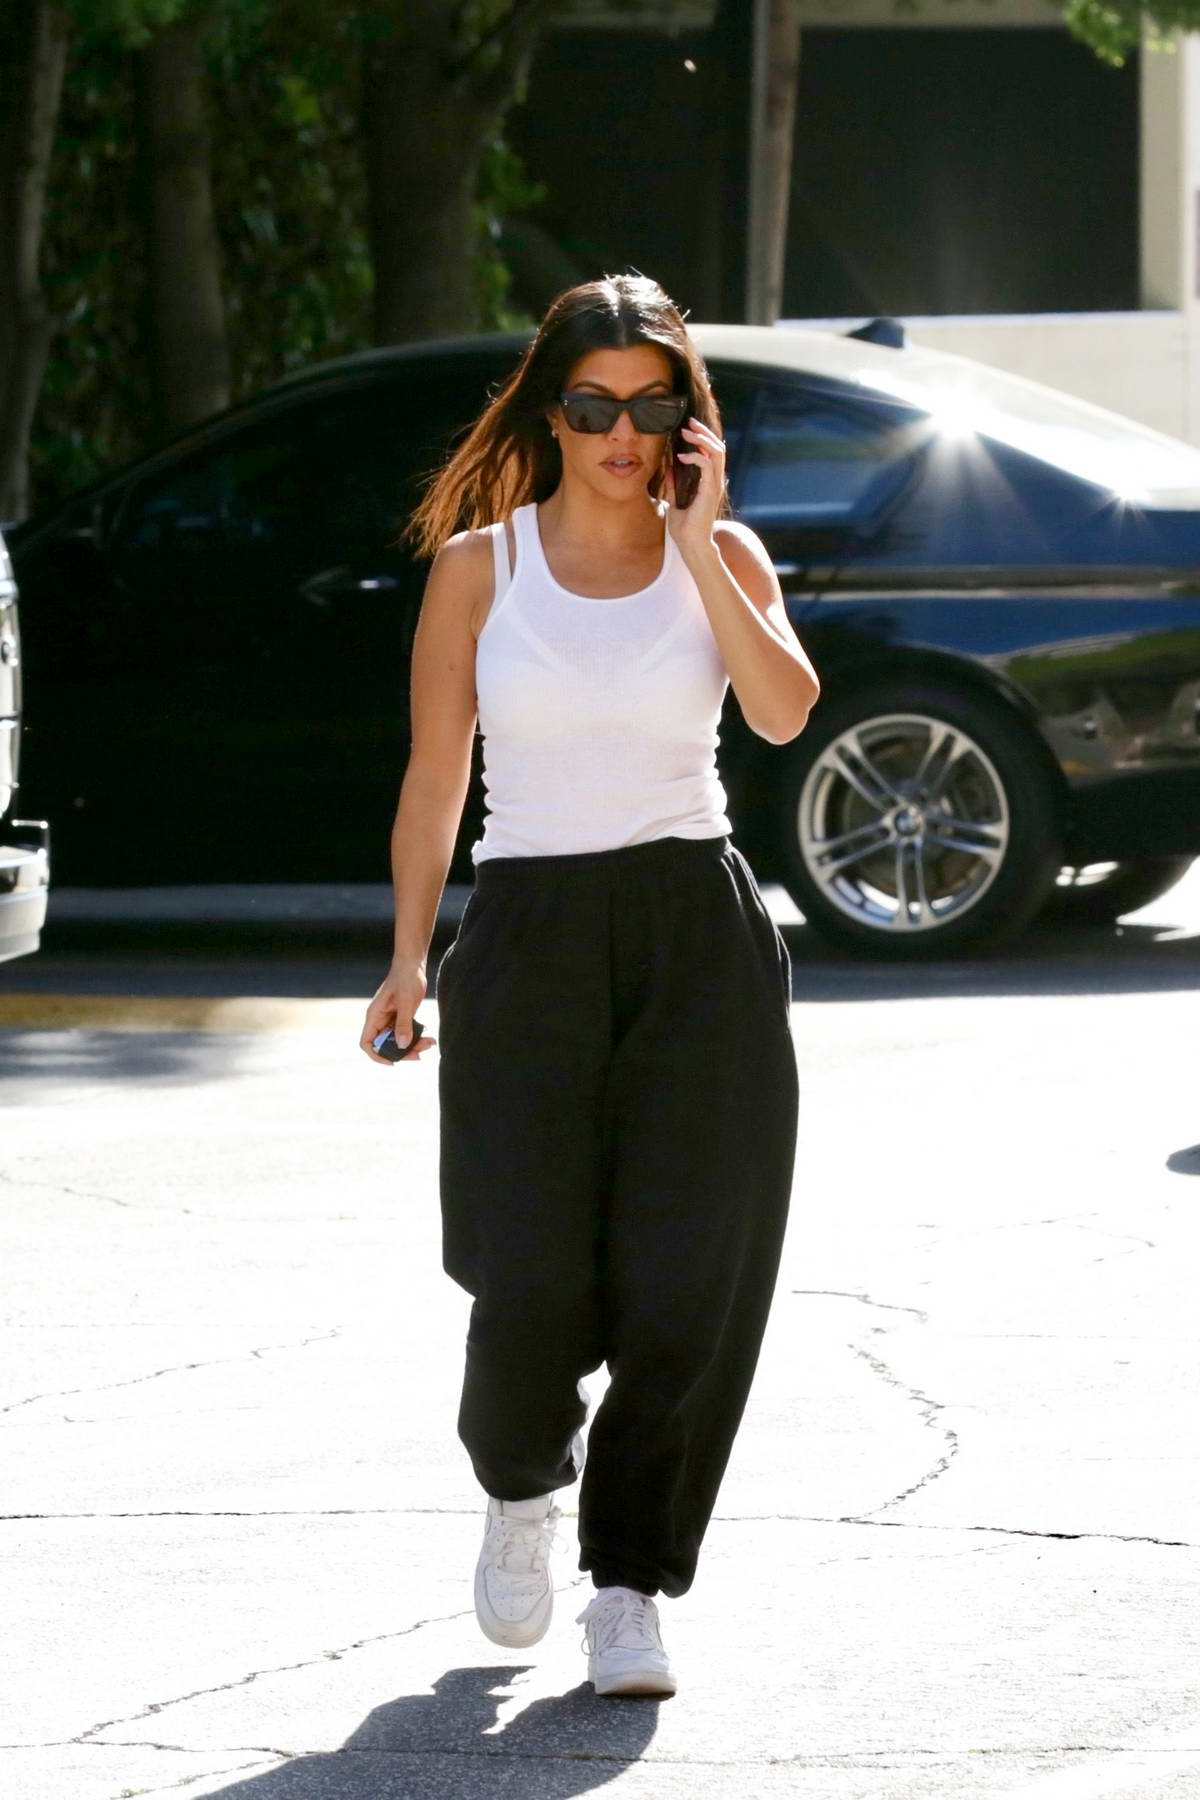 Kourtney Kardashian keeps it casual in a white tank top and black sweats while out in Calabasas, Los Angeles